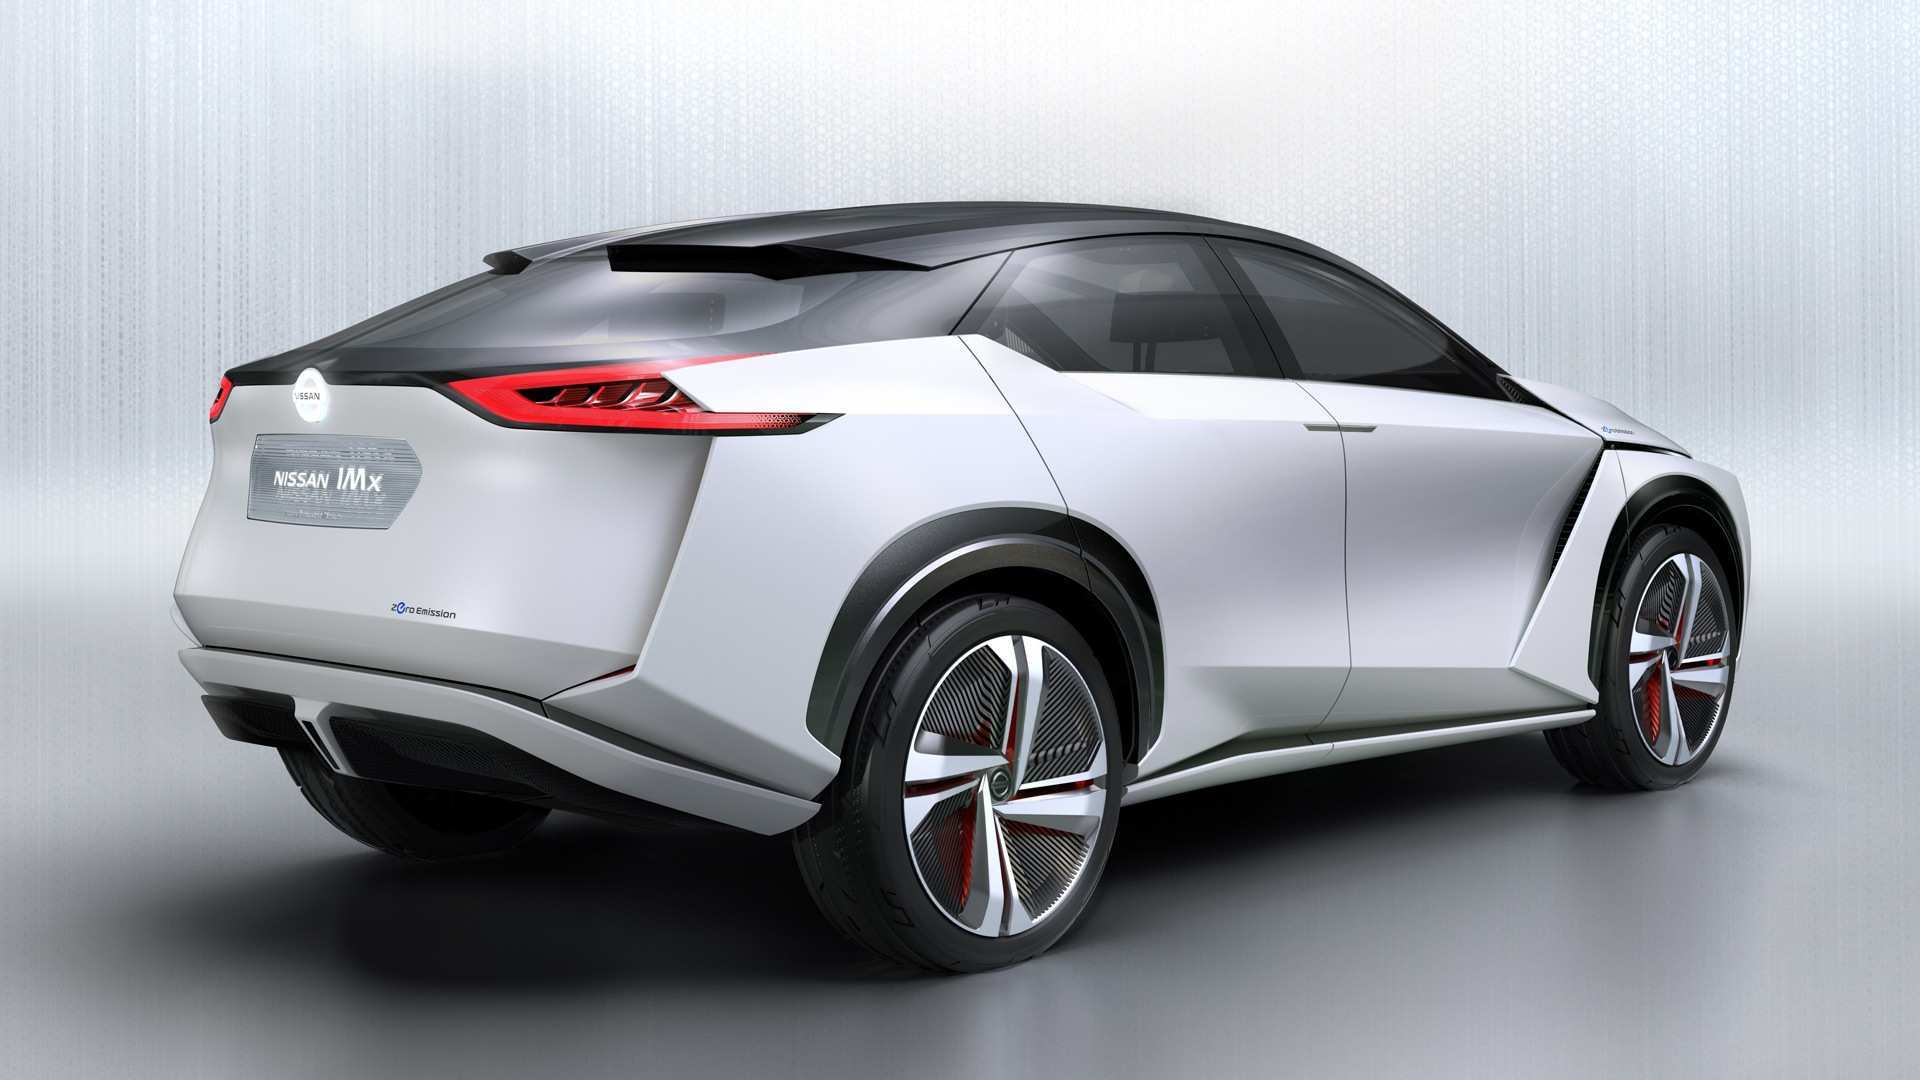 94 All New Nissan Imx 2020 Pictures